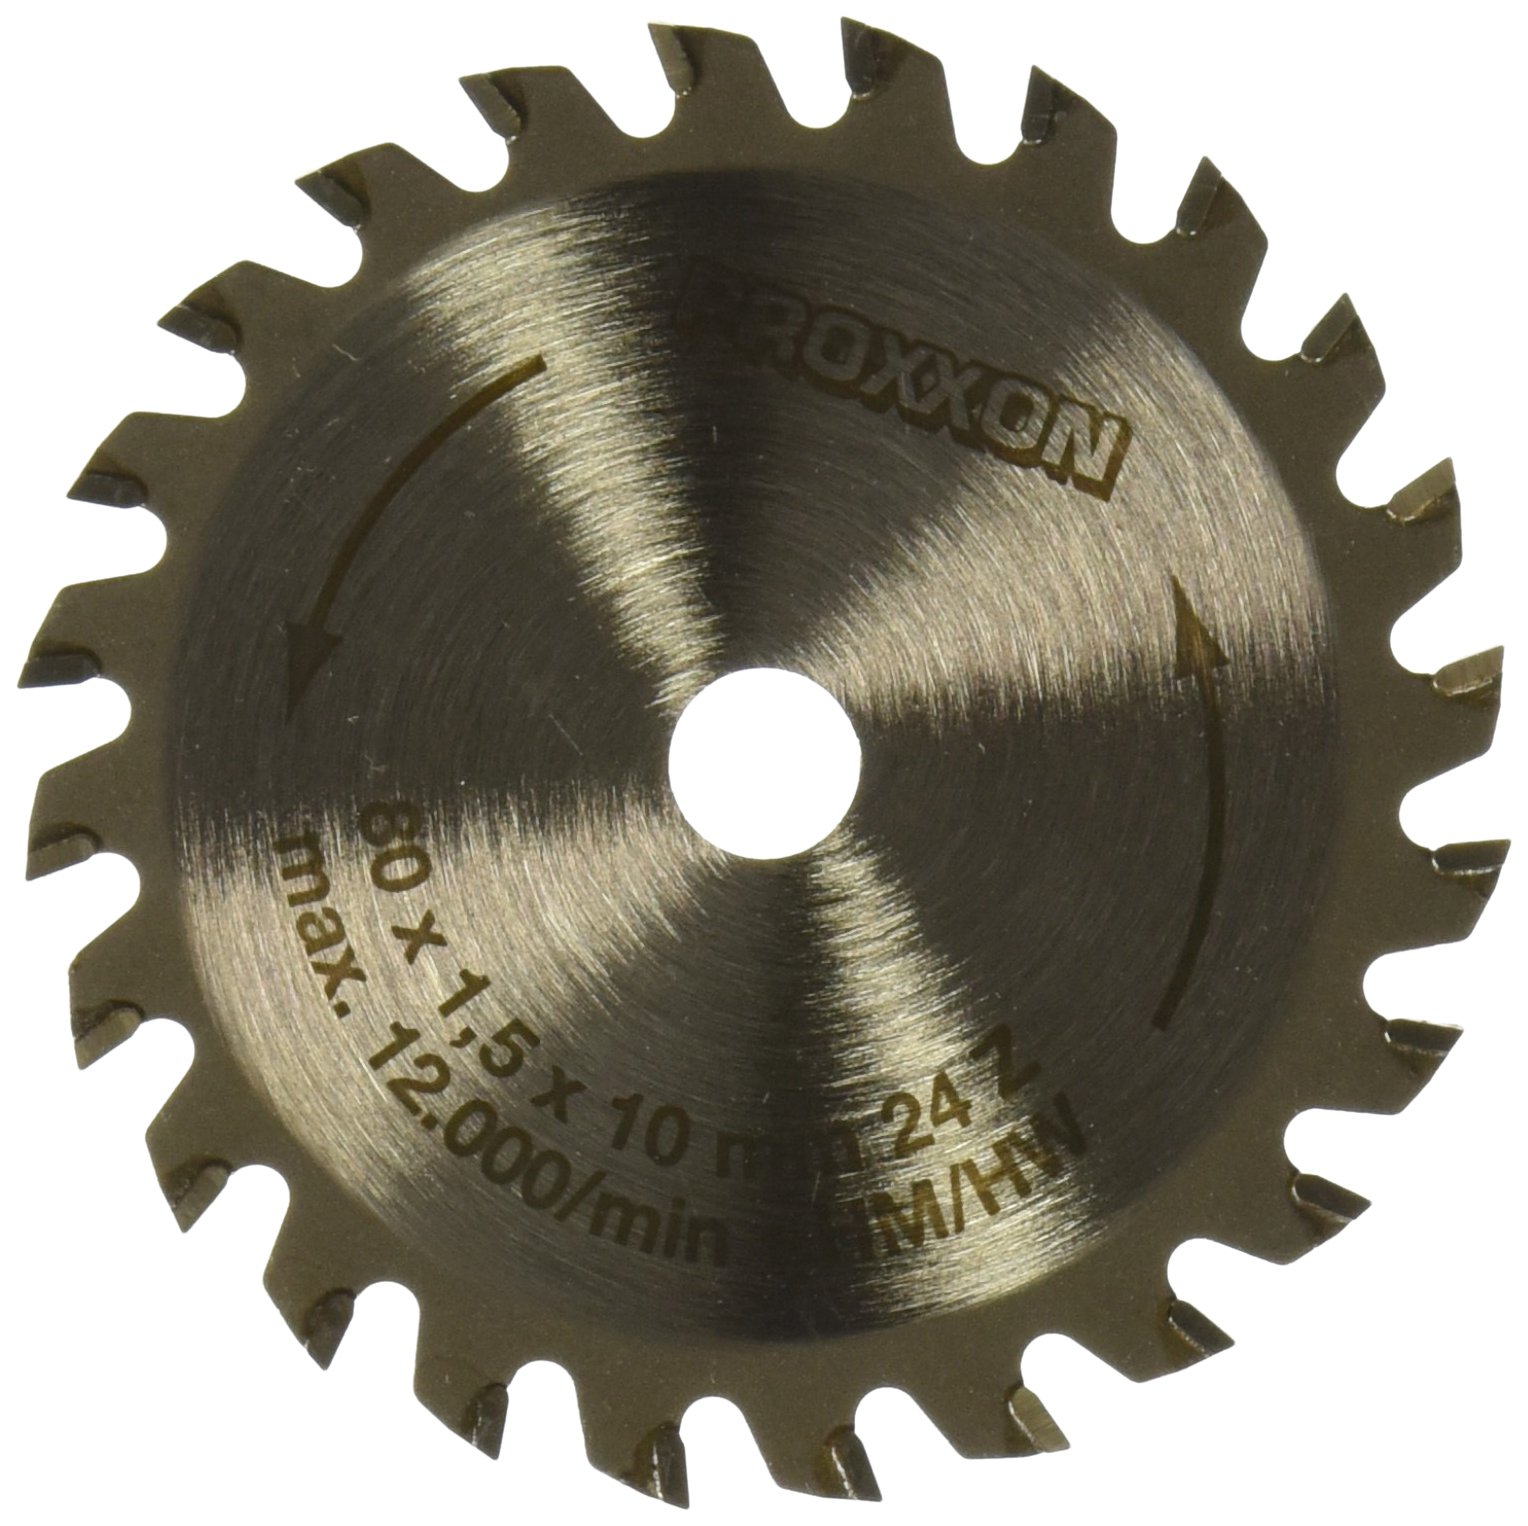 Proxxon 28734 80mm Carbide Tipped Saw Blade for FKS/E 24-Teeth